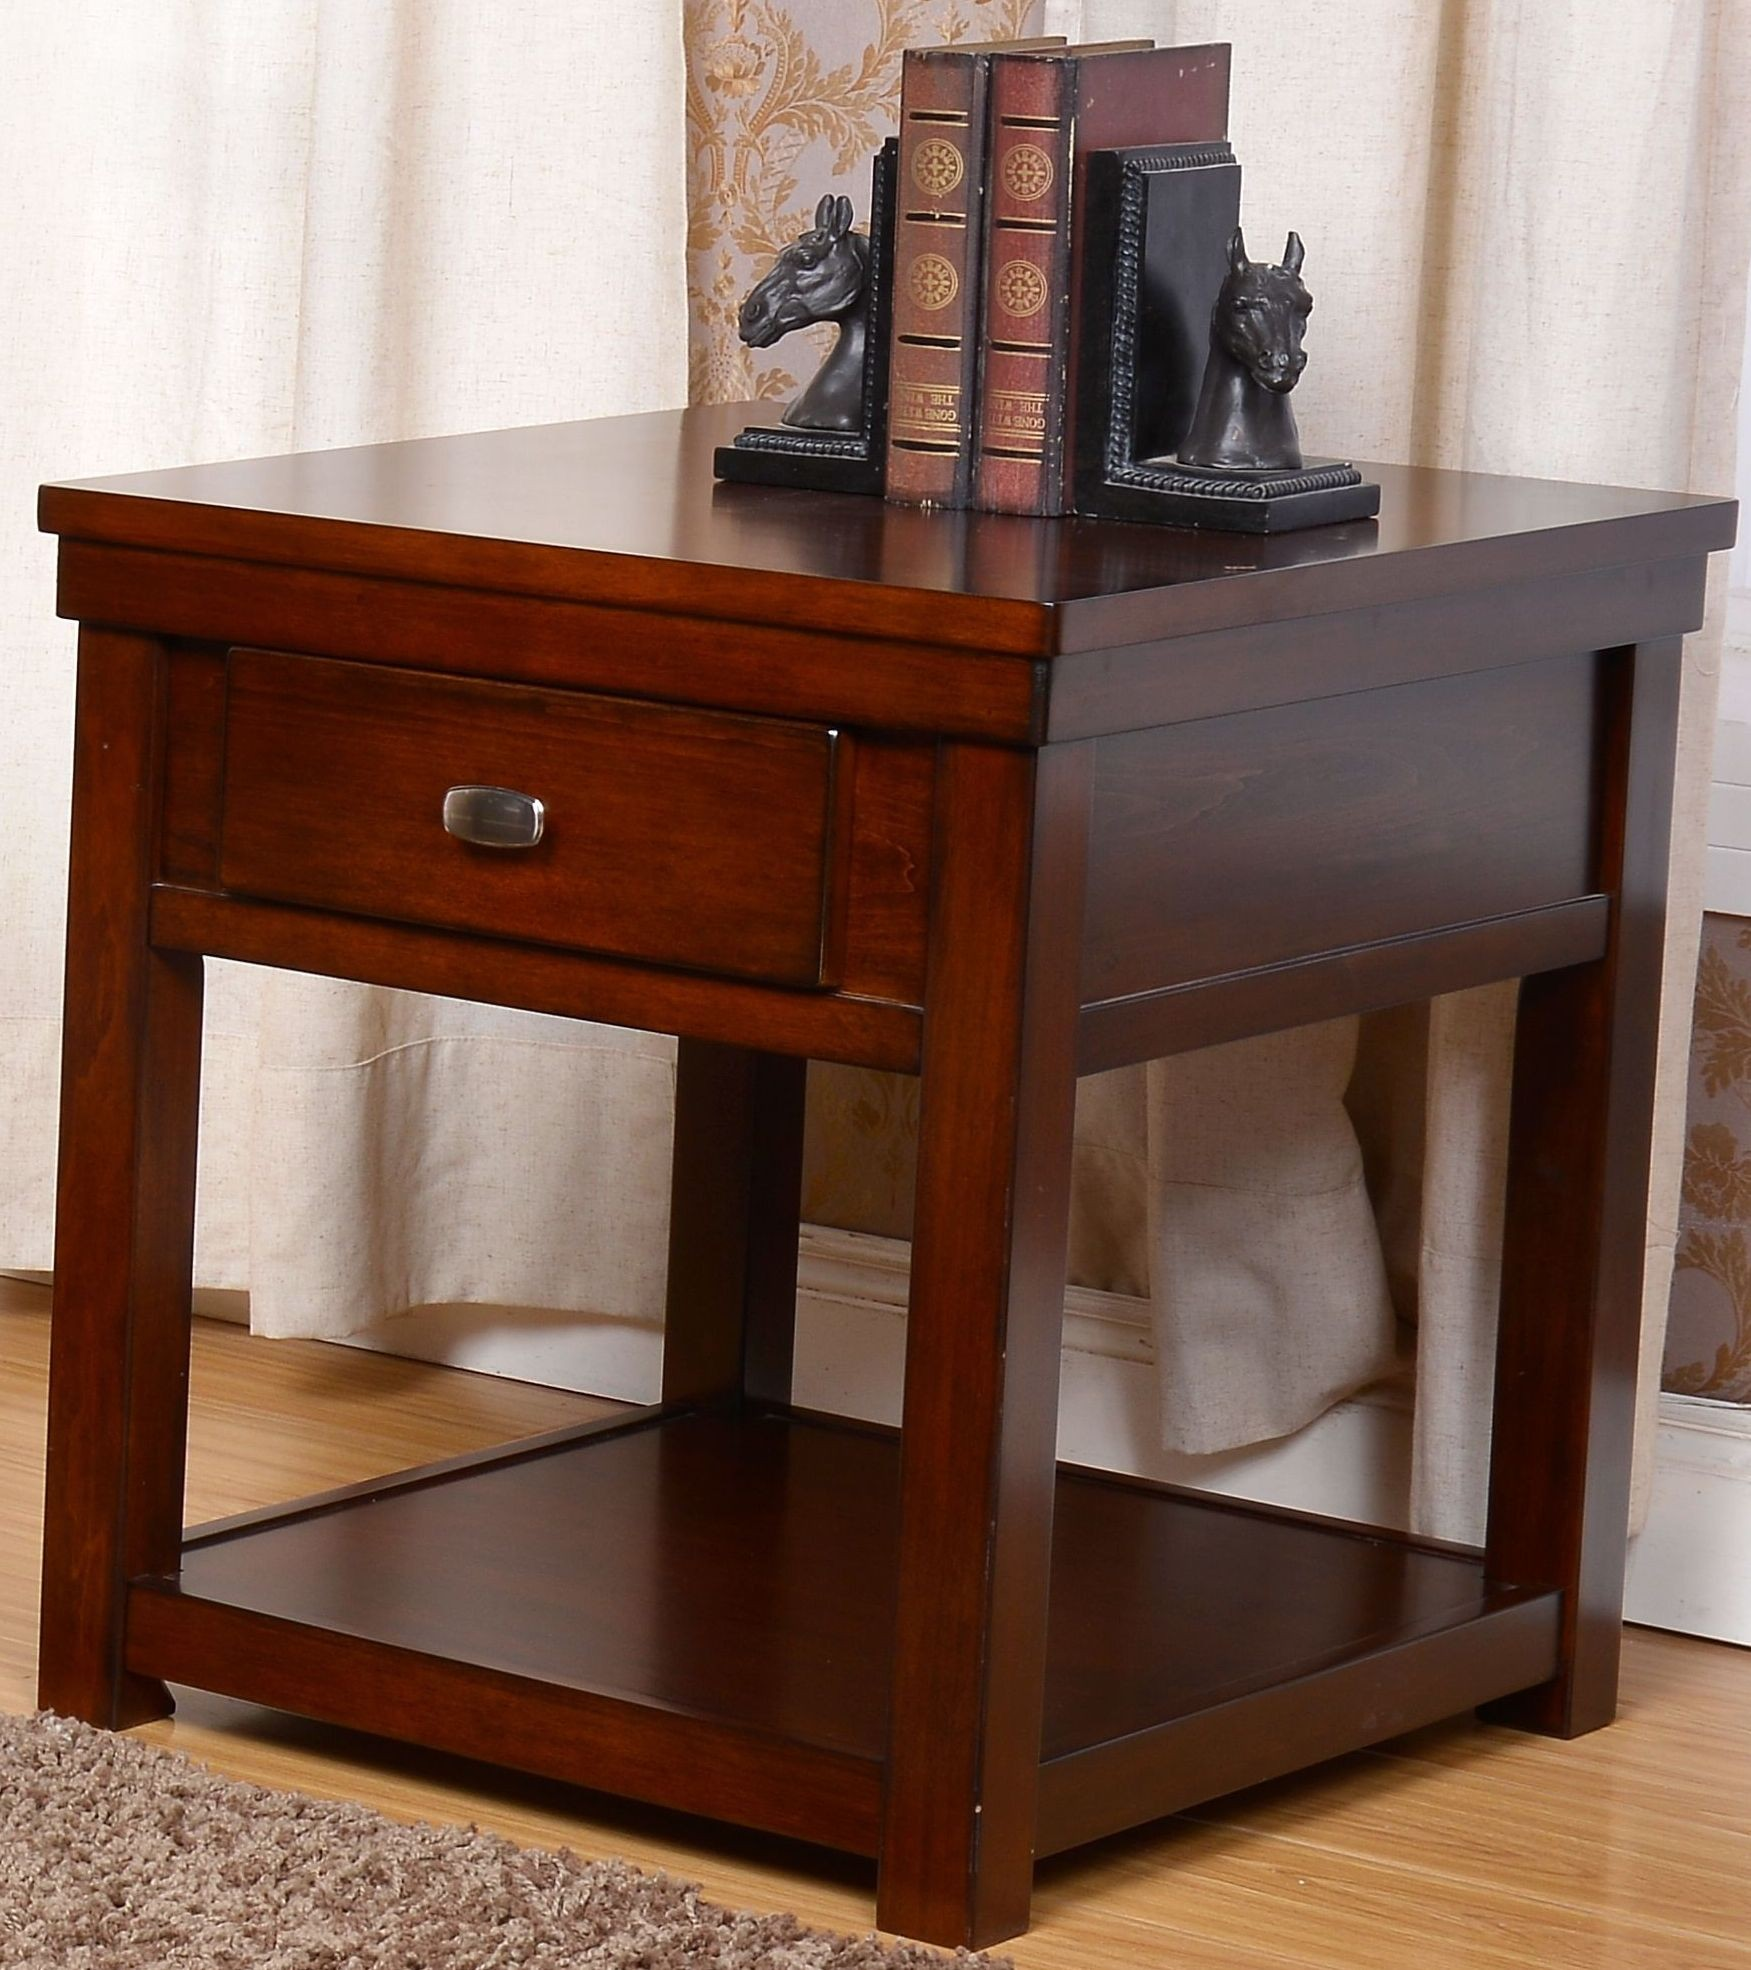 Sale Furniture Houston: Houston Burnished Cherry End Table From New Classic